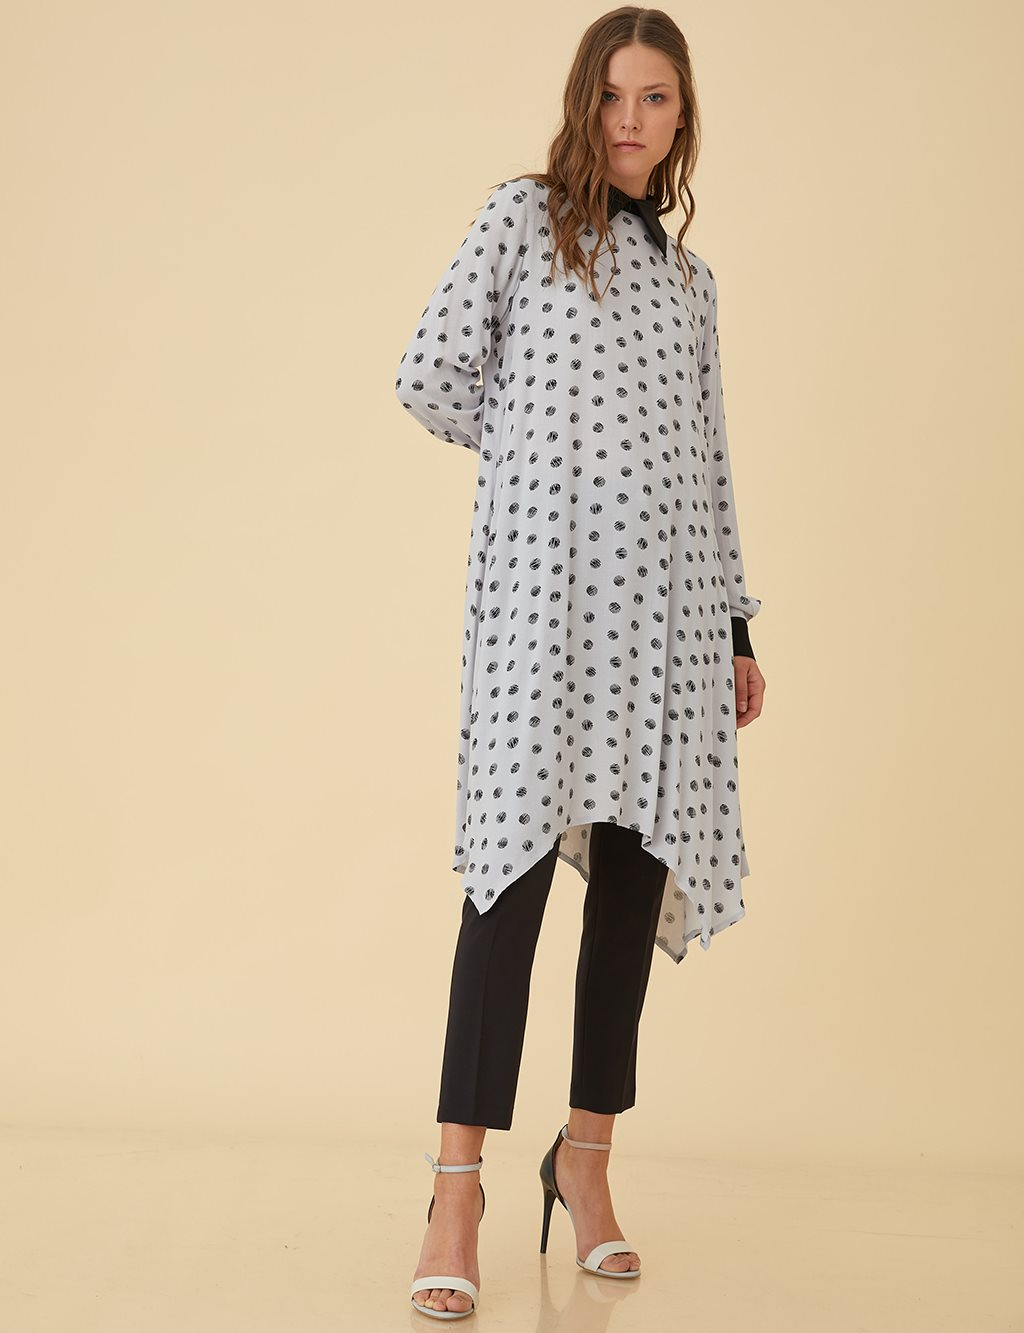 Tunic Dress With Spot Details B9-81085 Grey